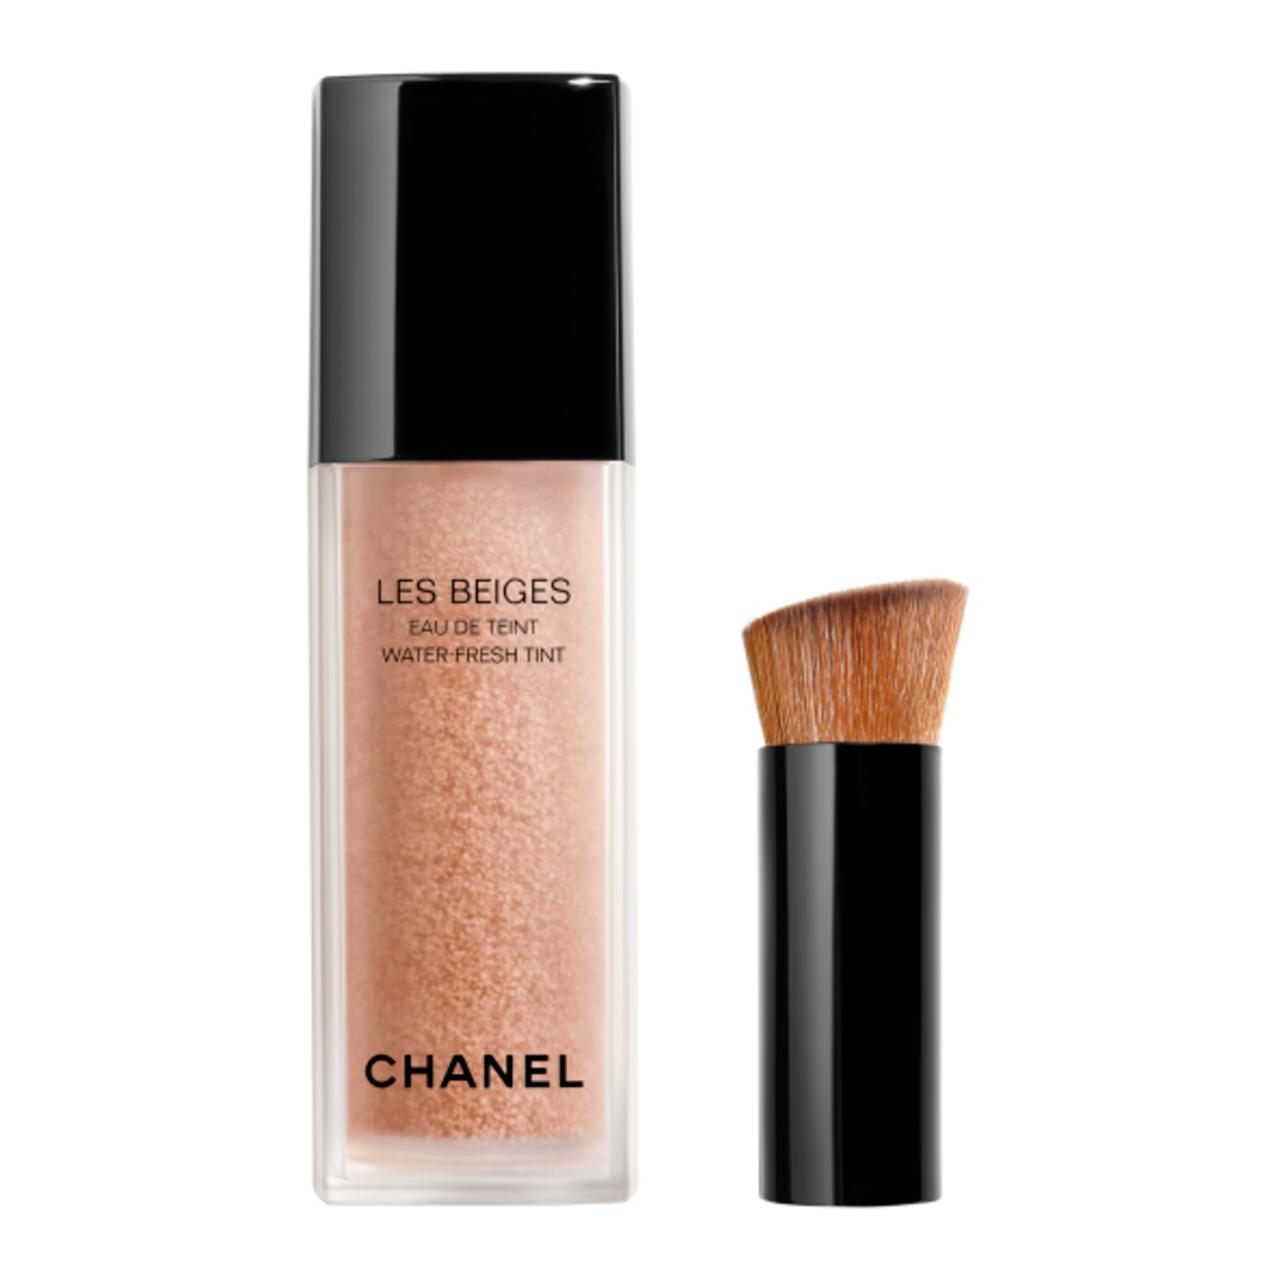 Chanel Les Beiges Water-Fresh Tint.